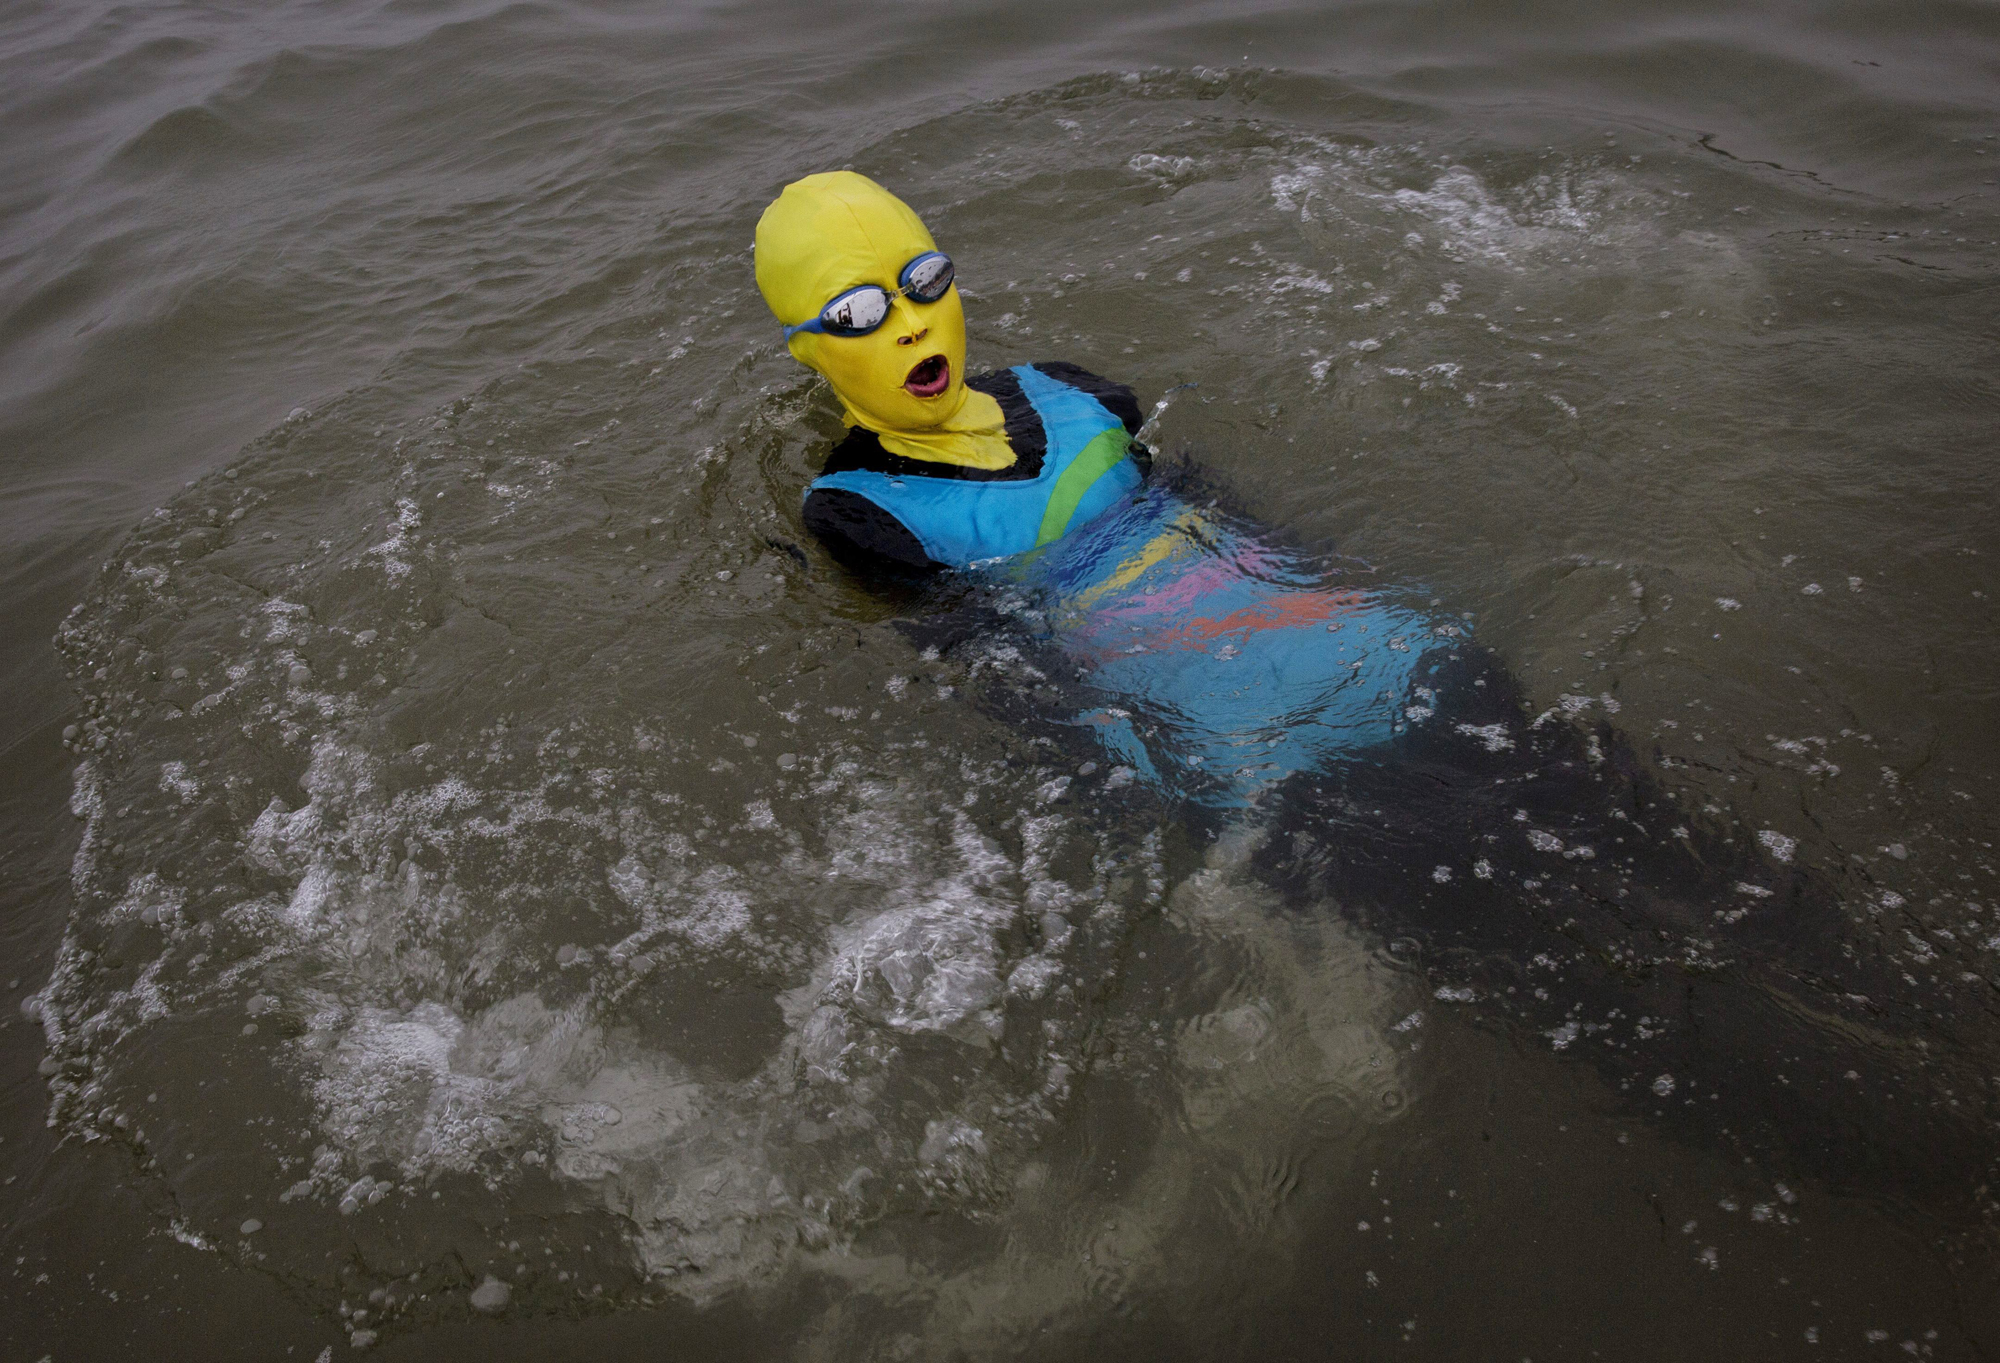 A woman wears a facekini as she swims on Aug. 20, 2014, on the Yellow Sea in Qingdao.